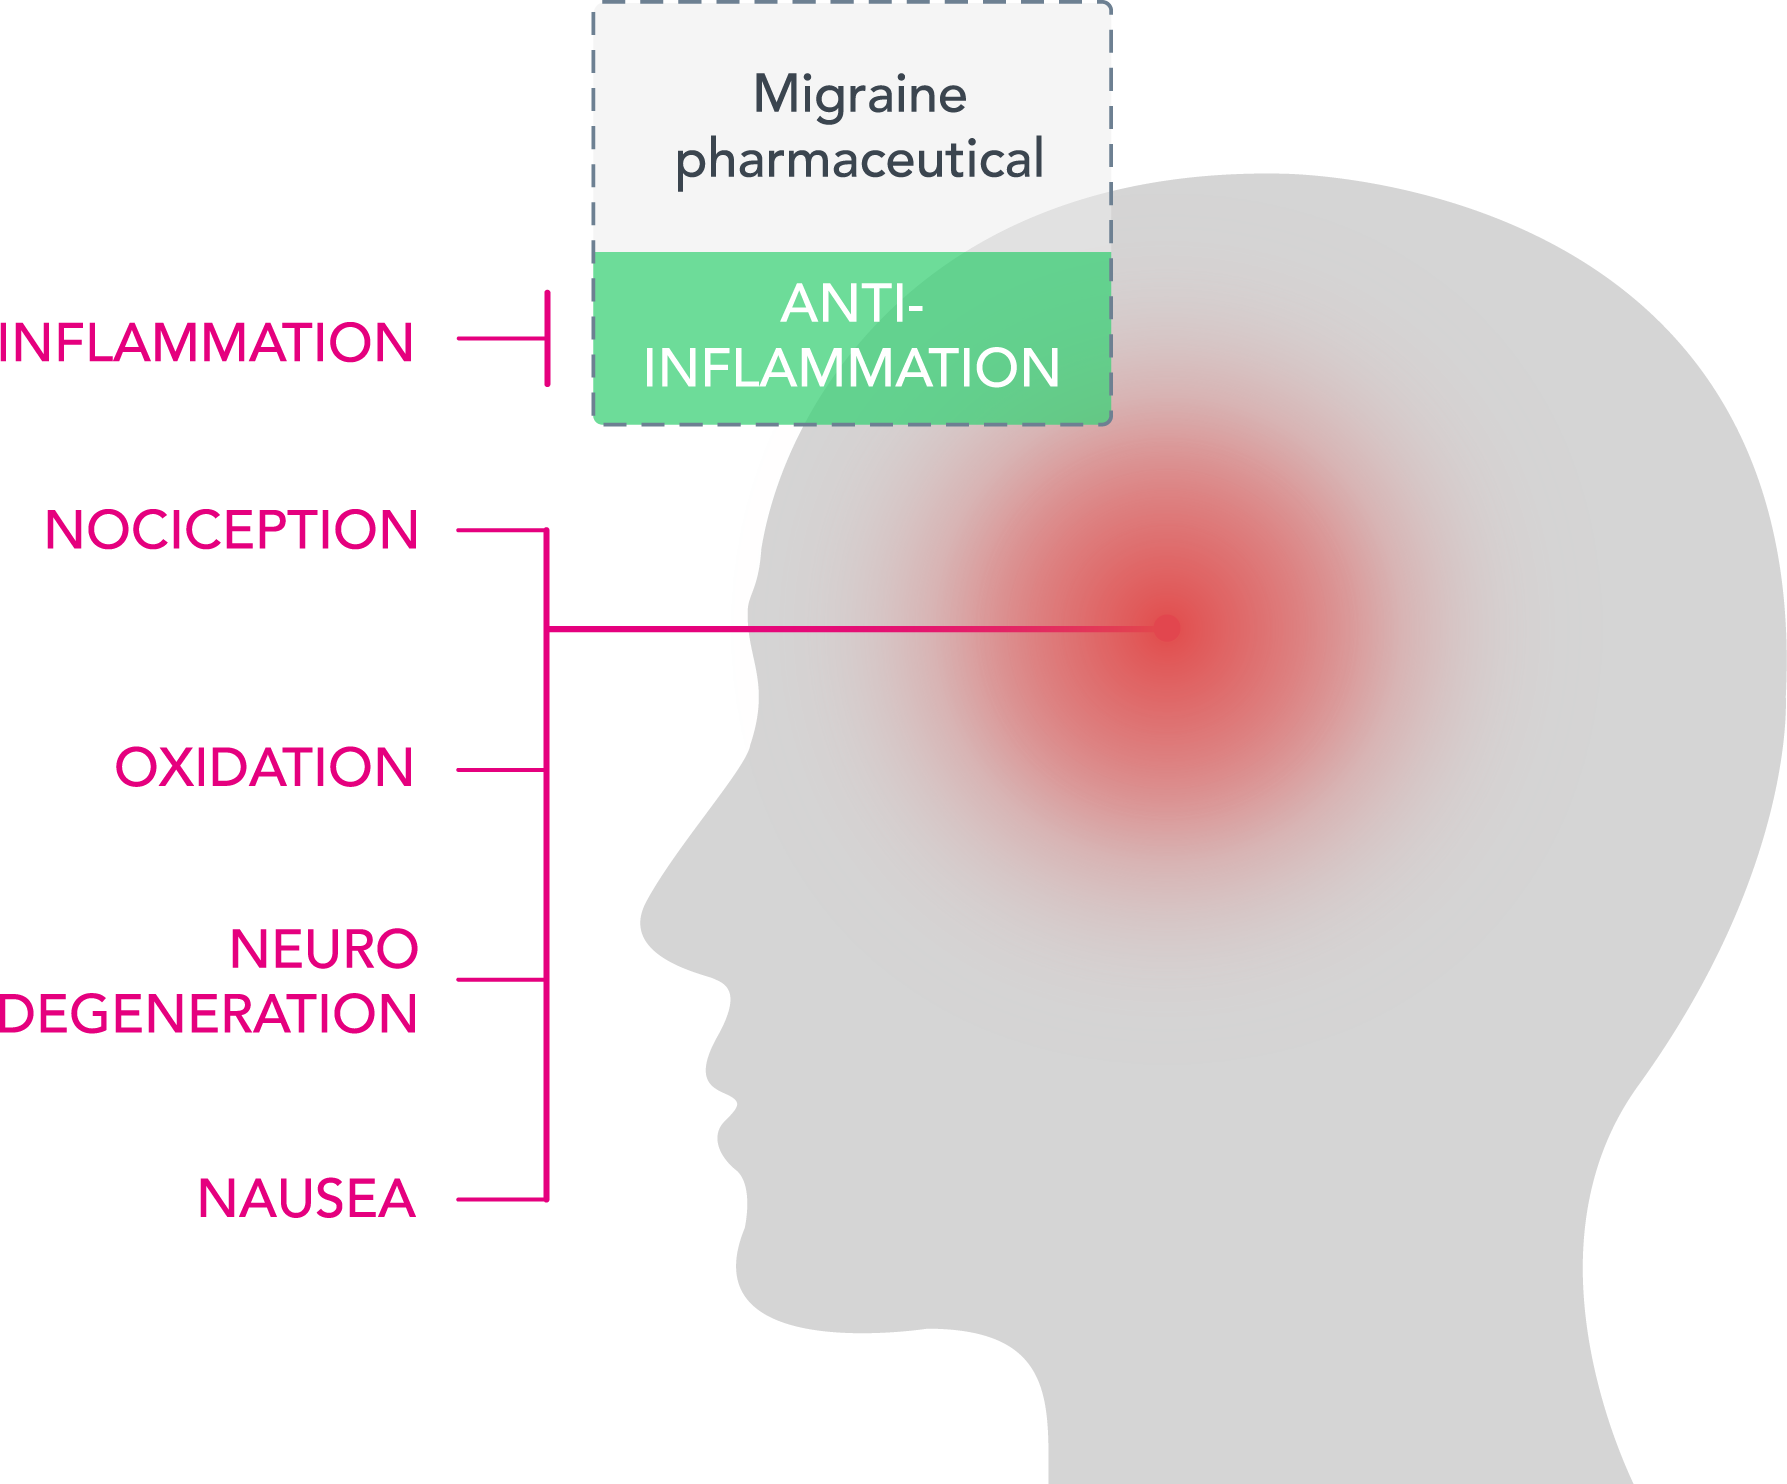 Mechanisms of migraine